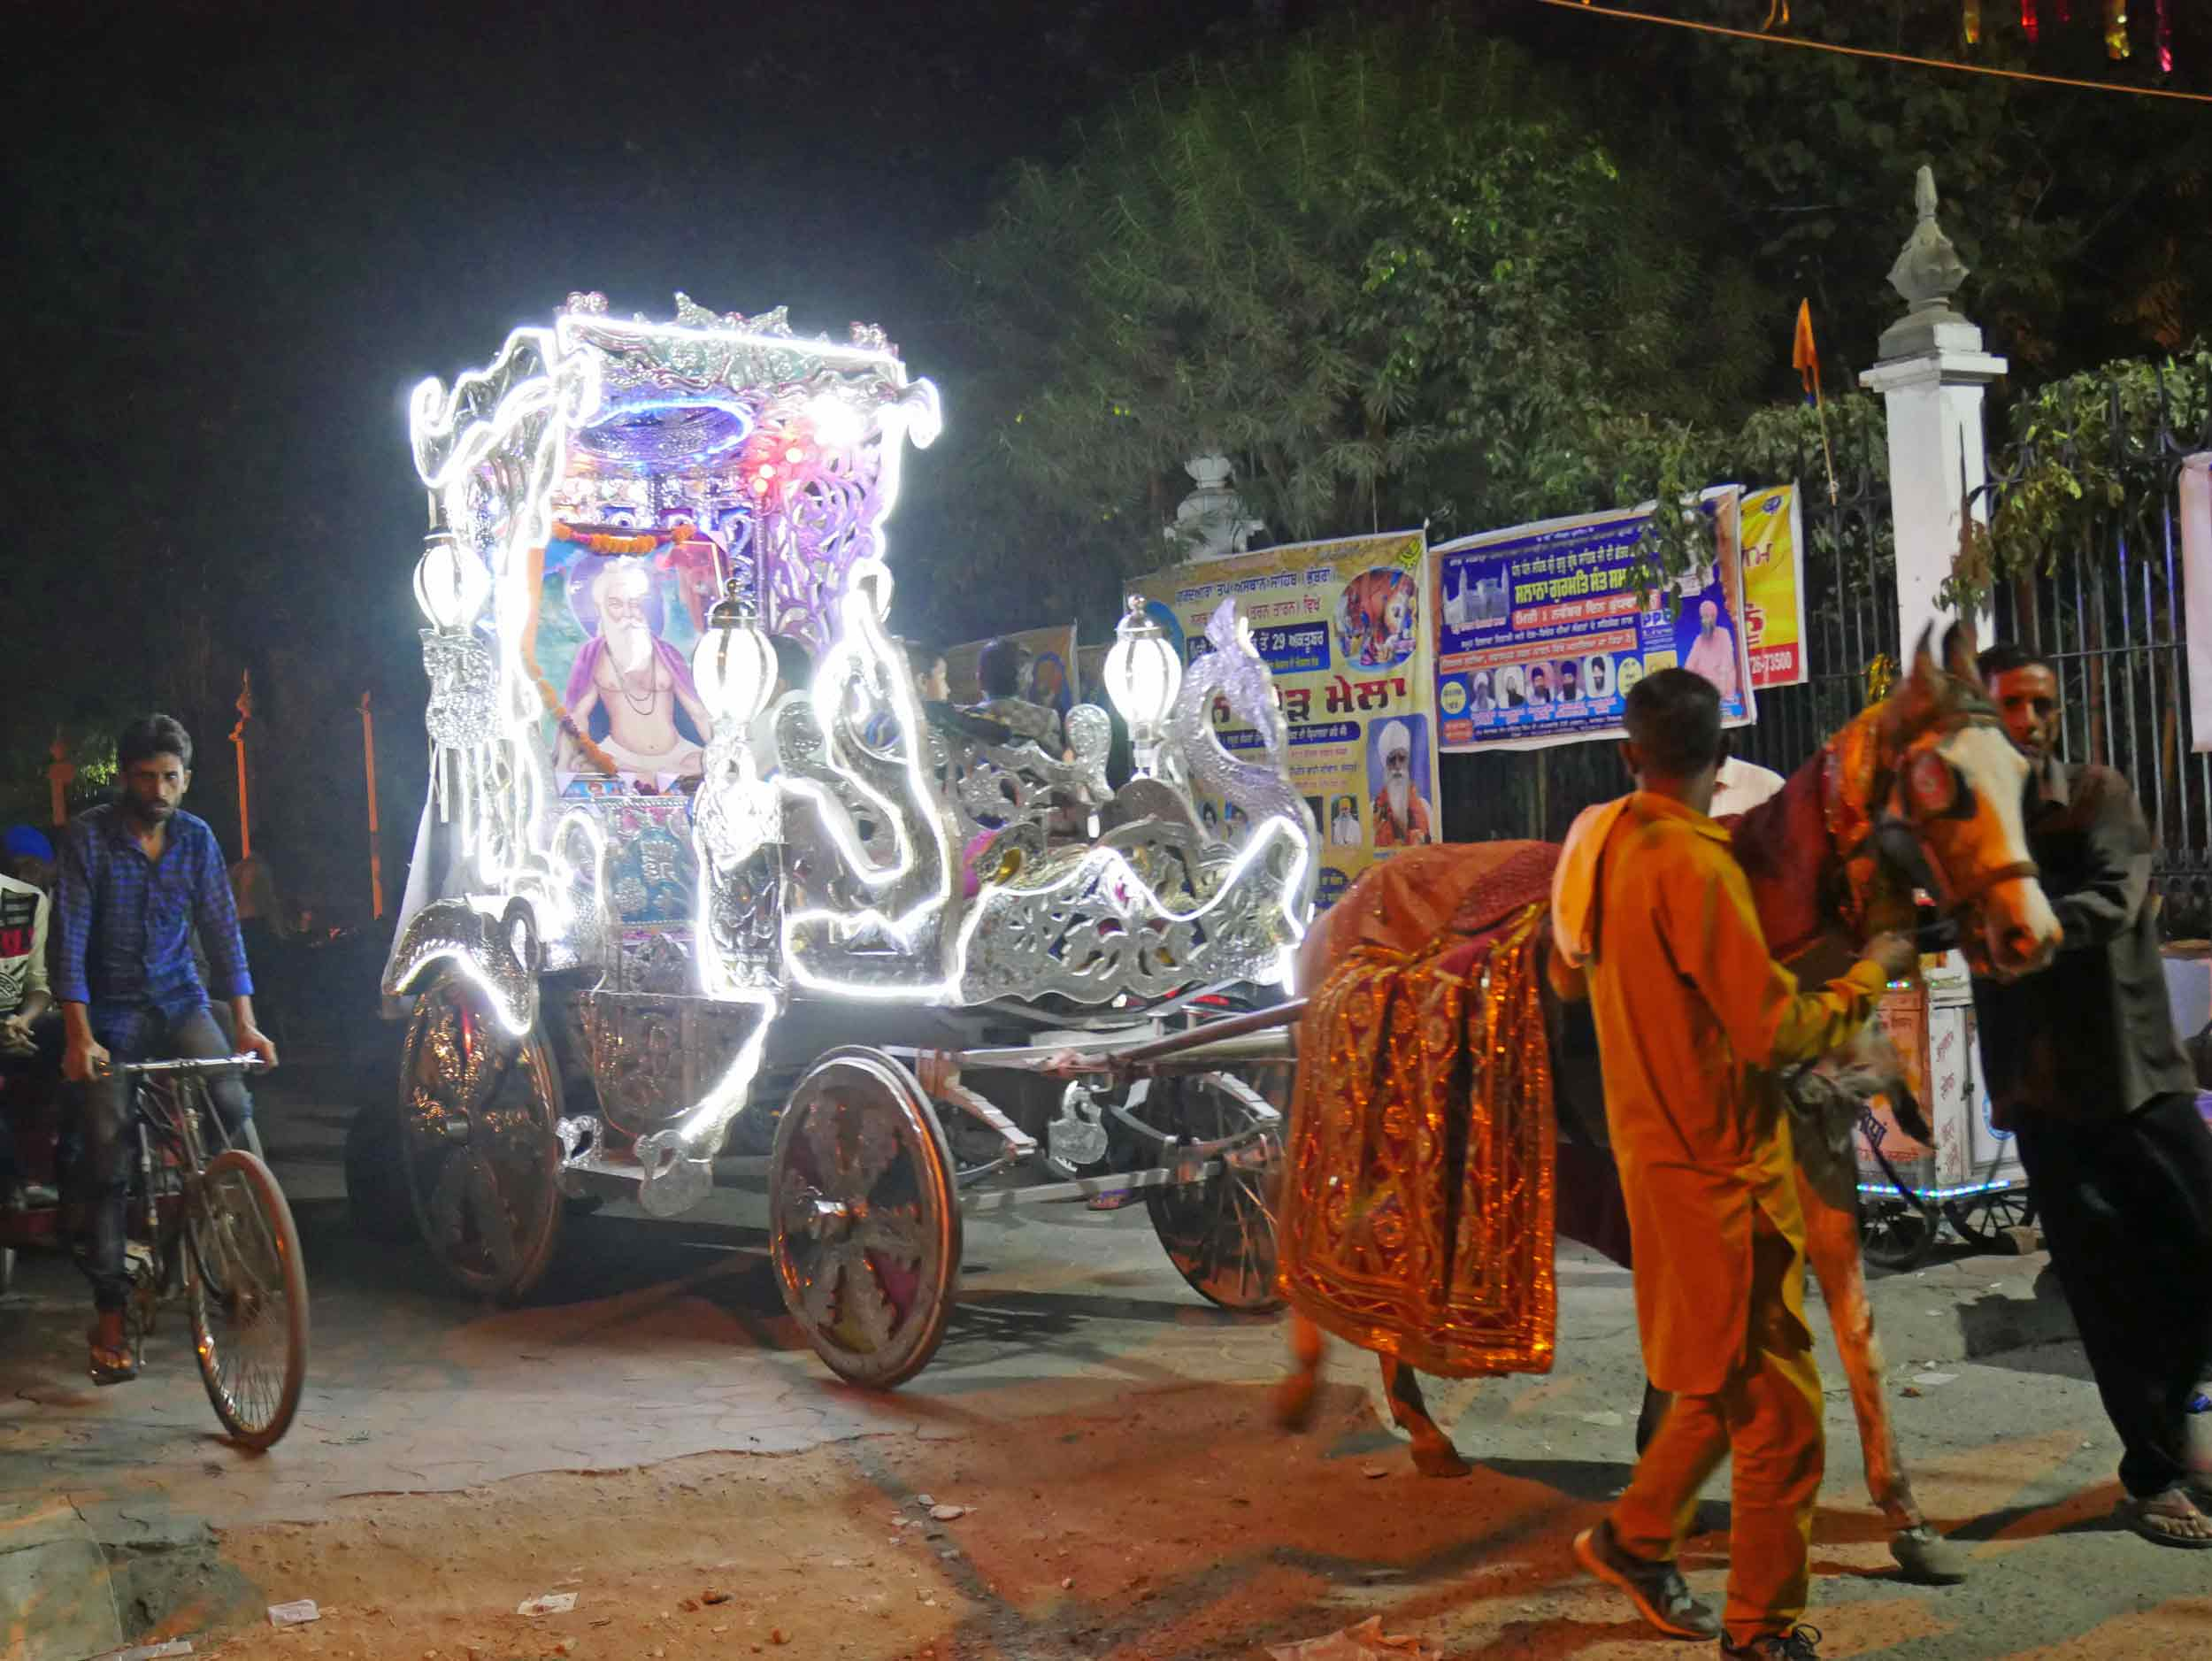 Our first evening in Amritsar, we stumbled upon a flashy, technicolor parade honoring the holy (Oct 30).